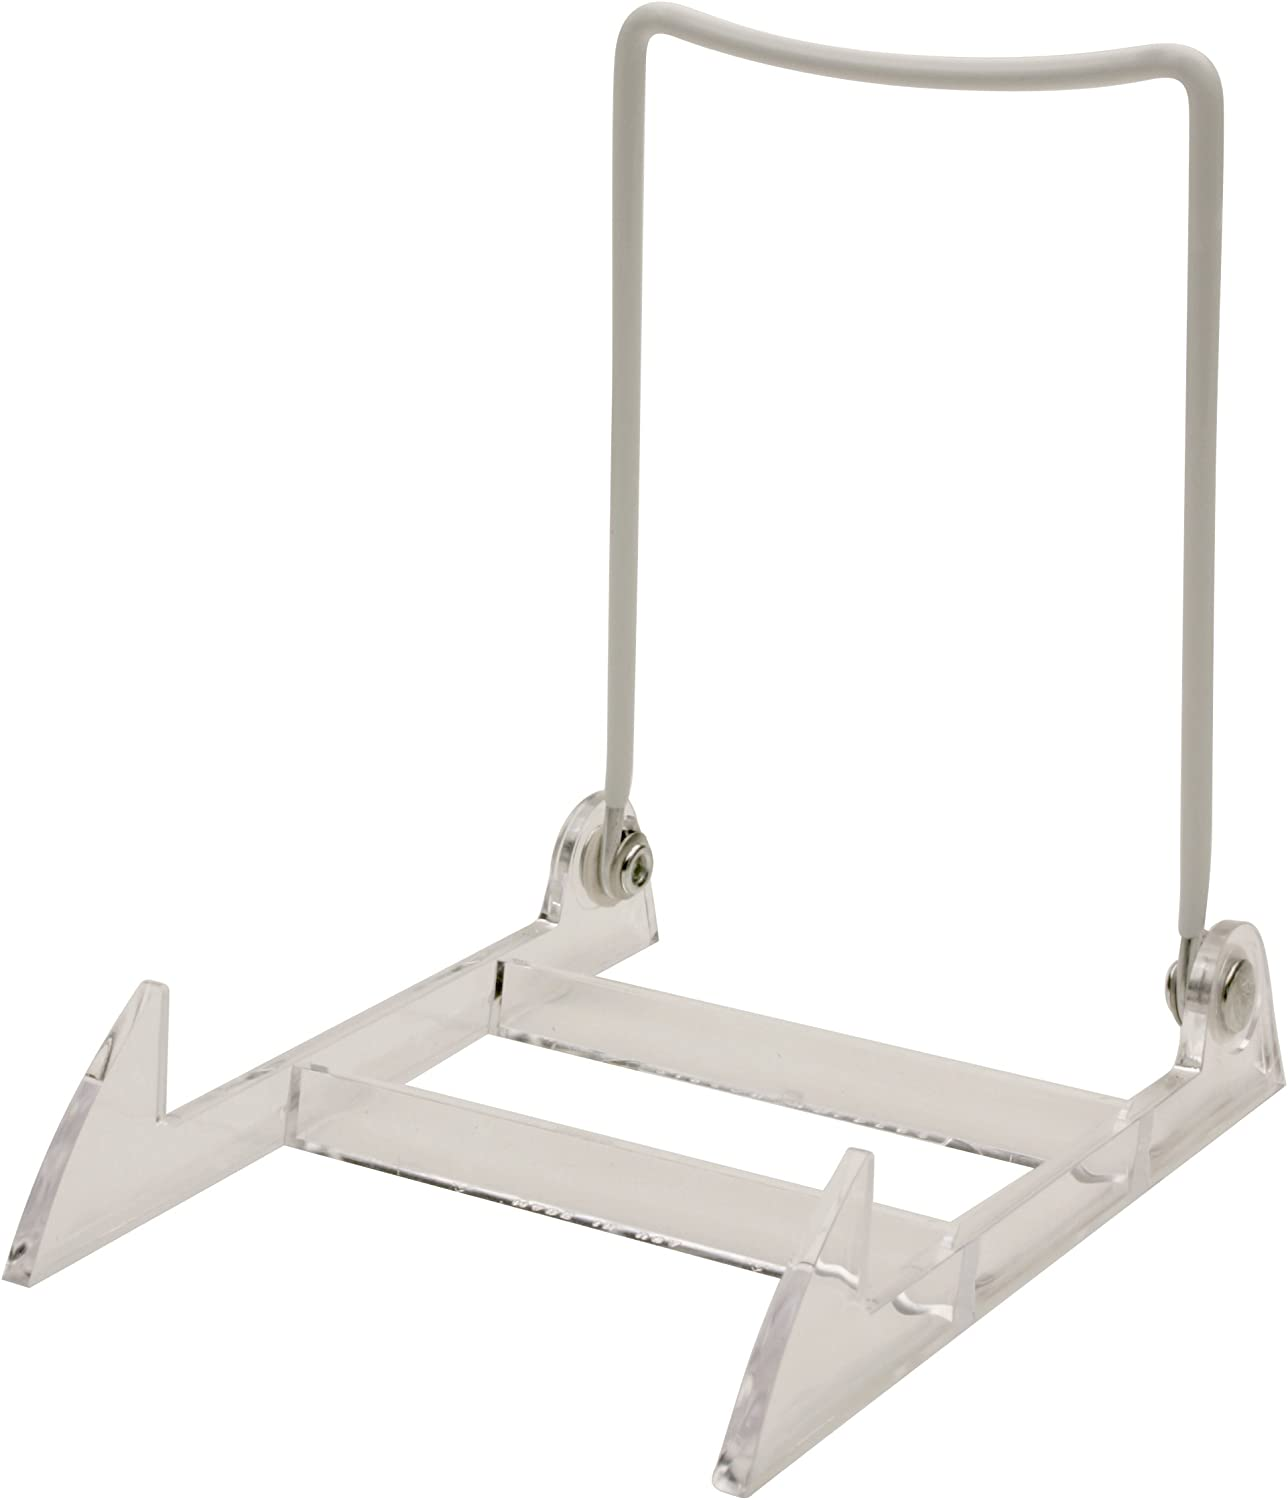 Gibson Holders Large Display Stand Clear Base//White Wire Pack of 2